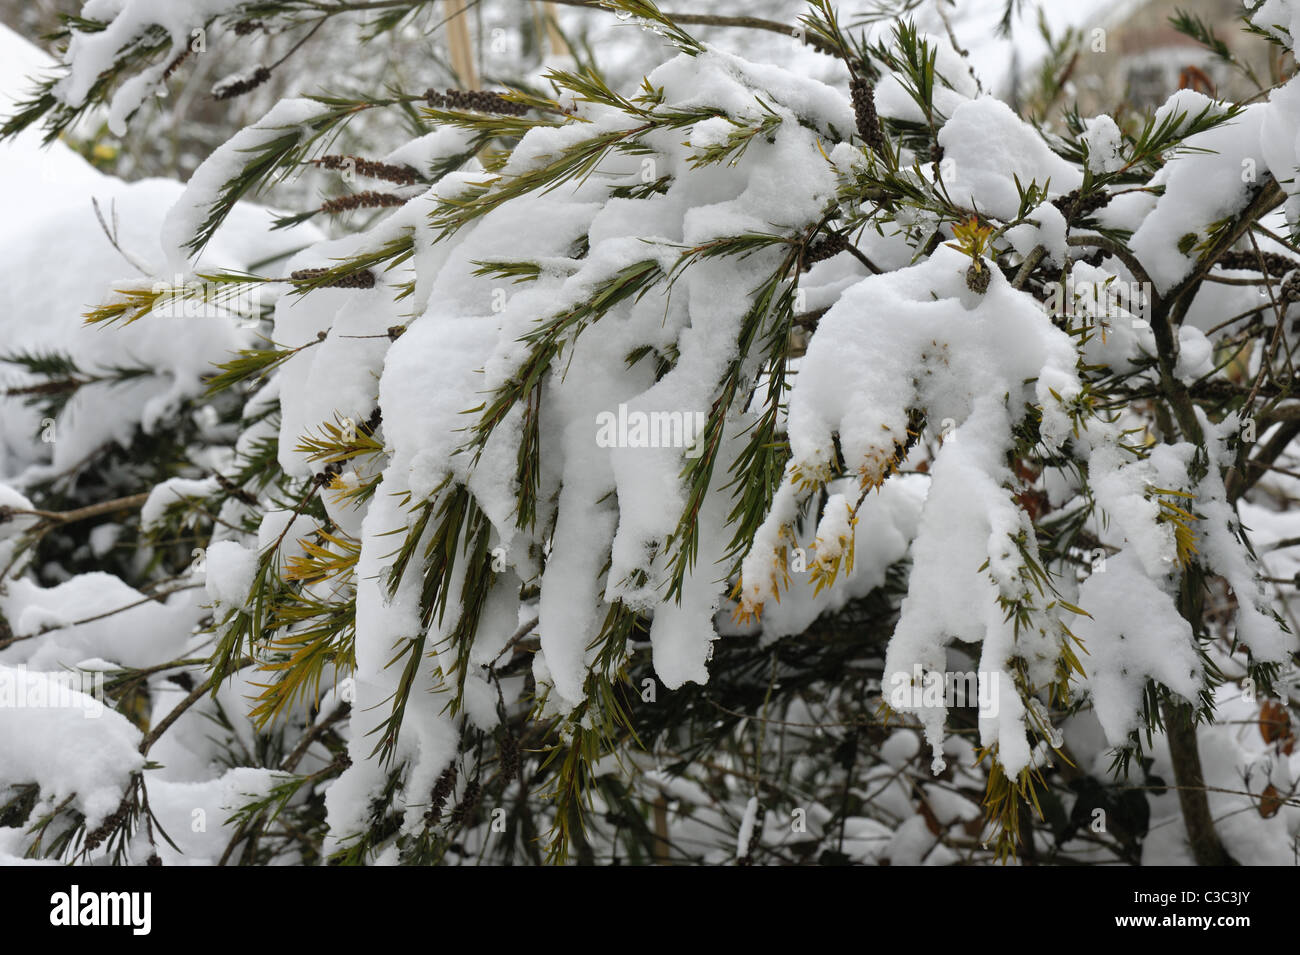 Australian bottle-brush (Callistemon rigidus) foliage with heavy snow cover in winter - Stock Image